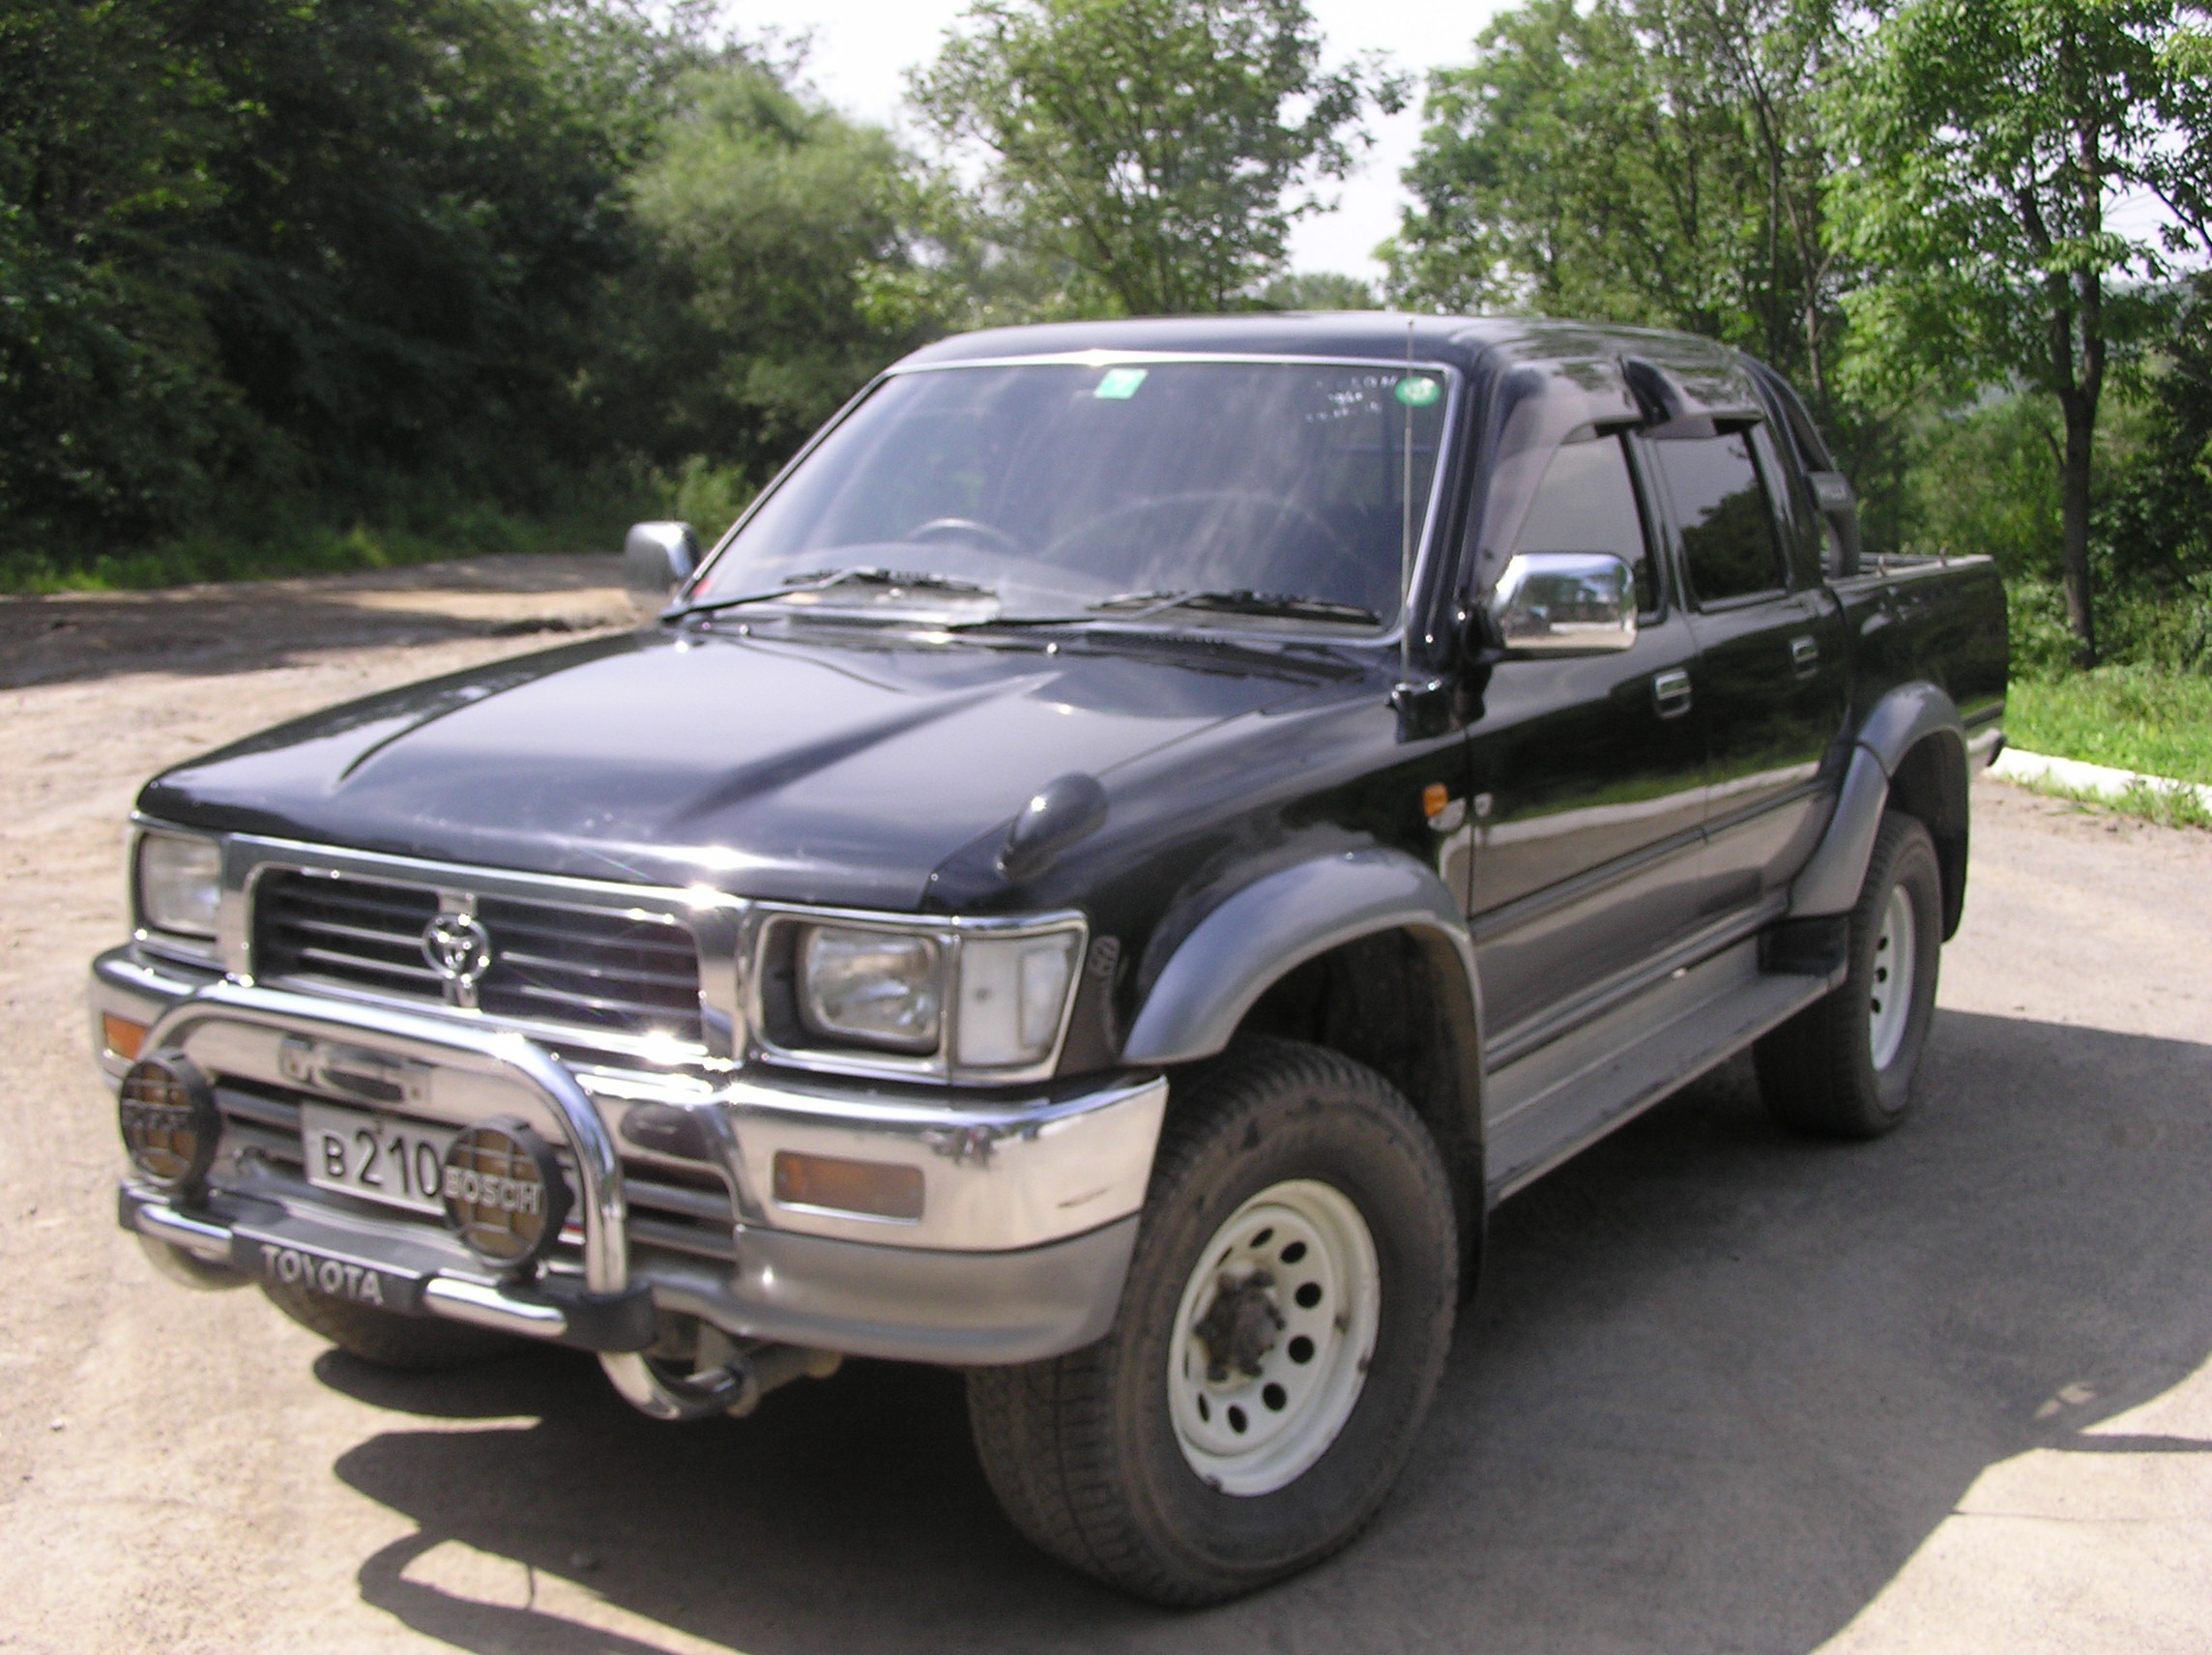 1996 toyota hilux pick up pictures 2446cc diesel automatic for sale. Black Bedroom Furniture Sets. Home Design Ideas